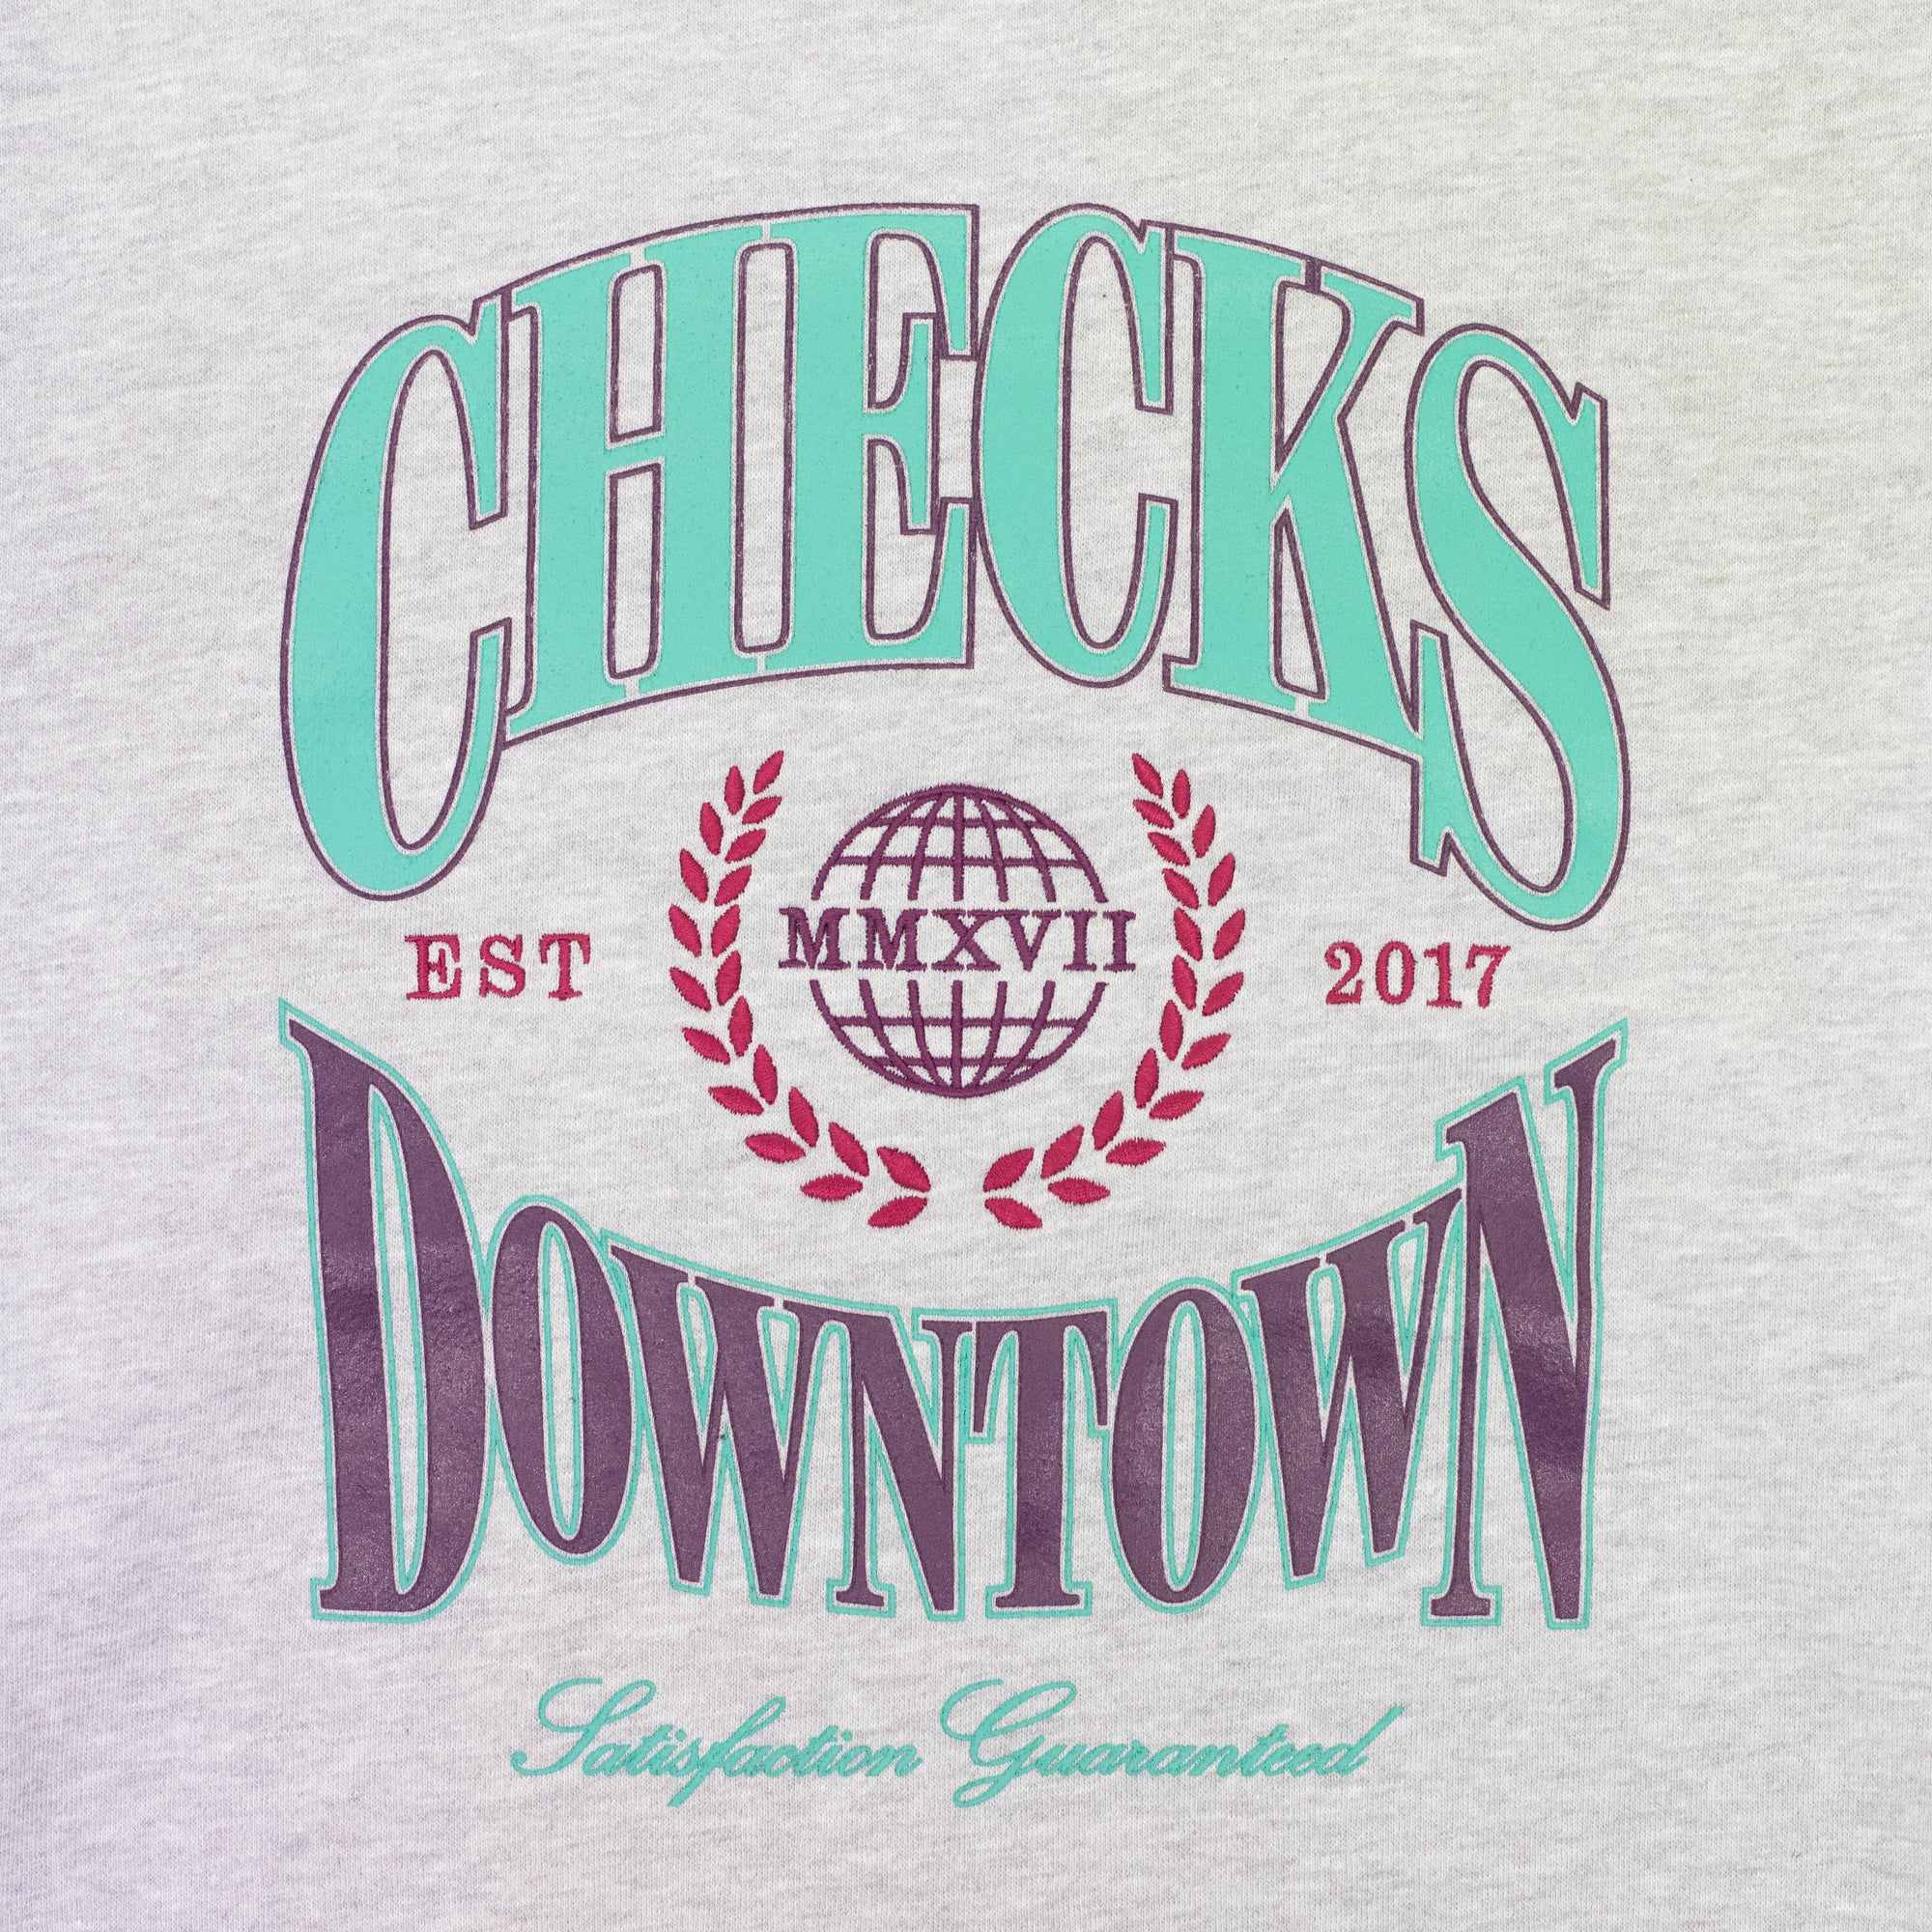 Load image into Gallery viewer, Championship Crewneck South Beach | CHECKS DOWNTOWN